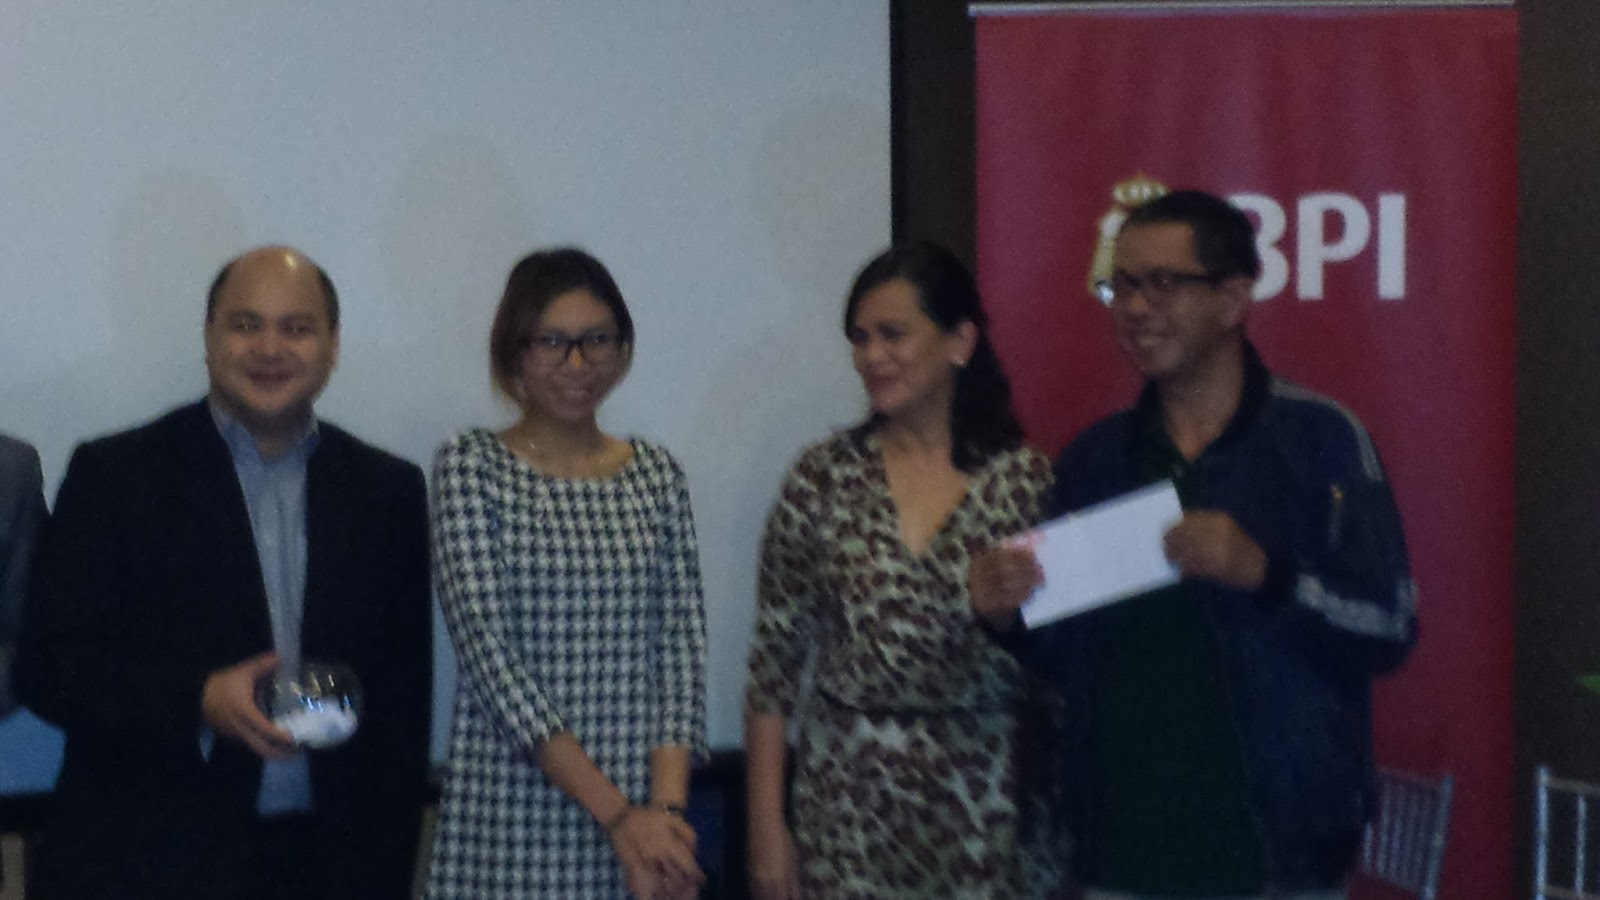 BPI event airfare winner